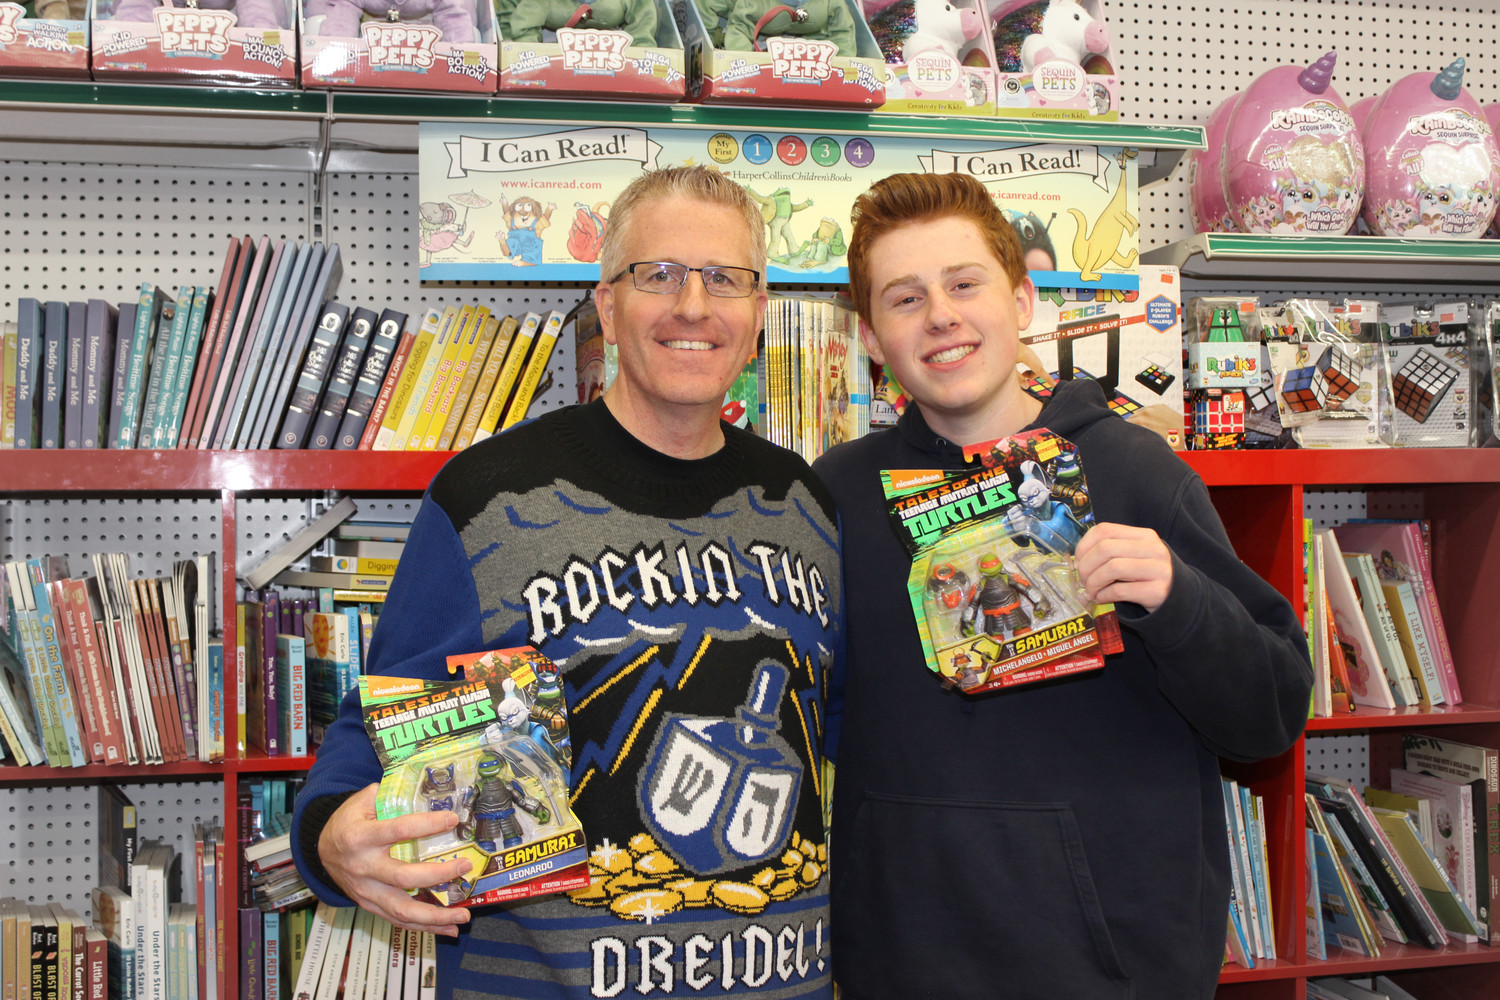 Todd Weinstein, 46, and his son Alex, 15, with toys at Matty's Toy Stop in Merrick on Dec. 6 during a fundraiser, spearheaded by Weinstein, that donated $3,000 worth of toys to the John Theissen Children's Foundation.